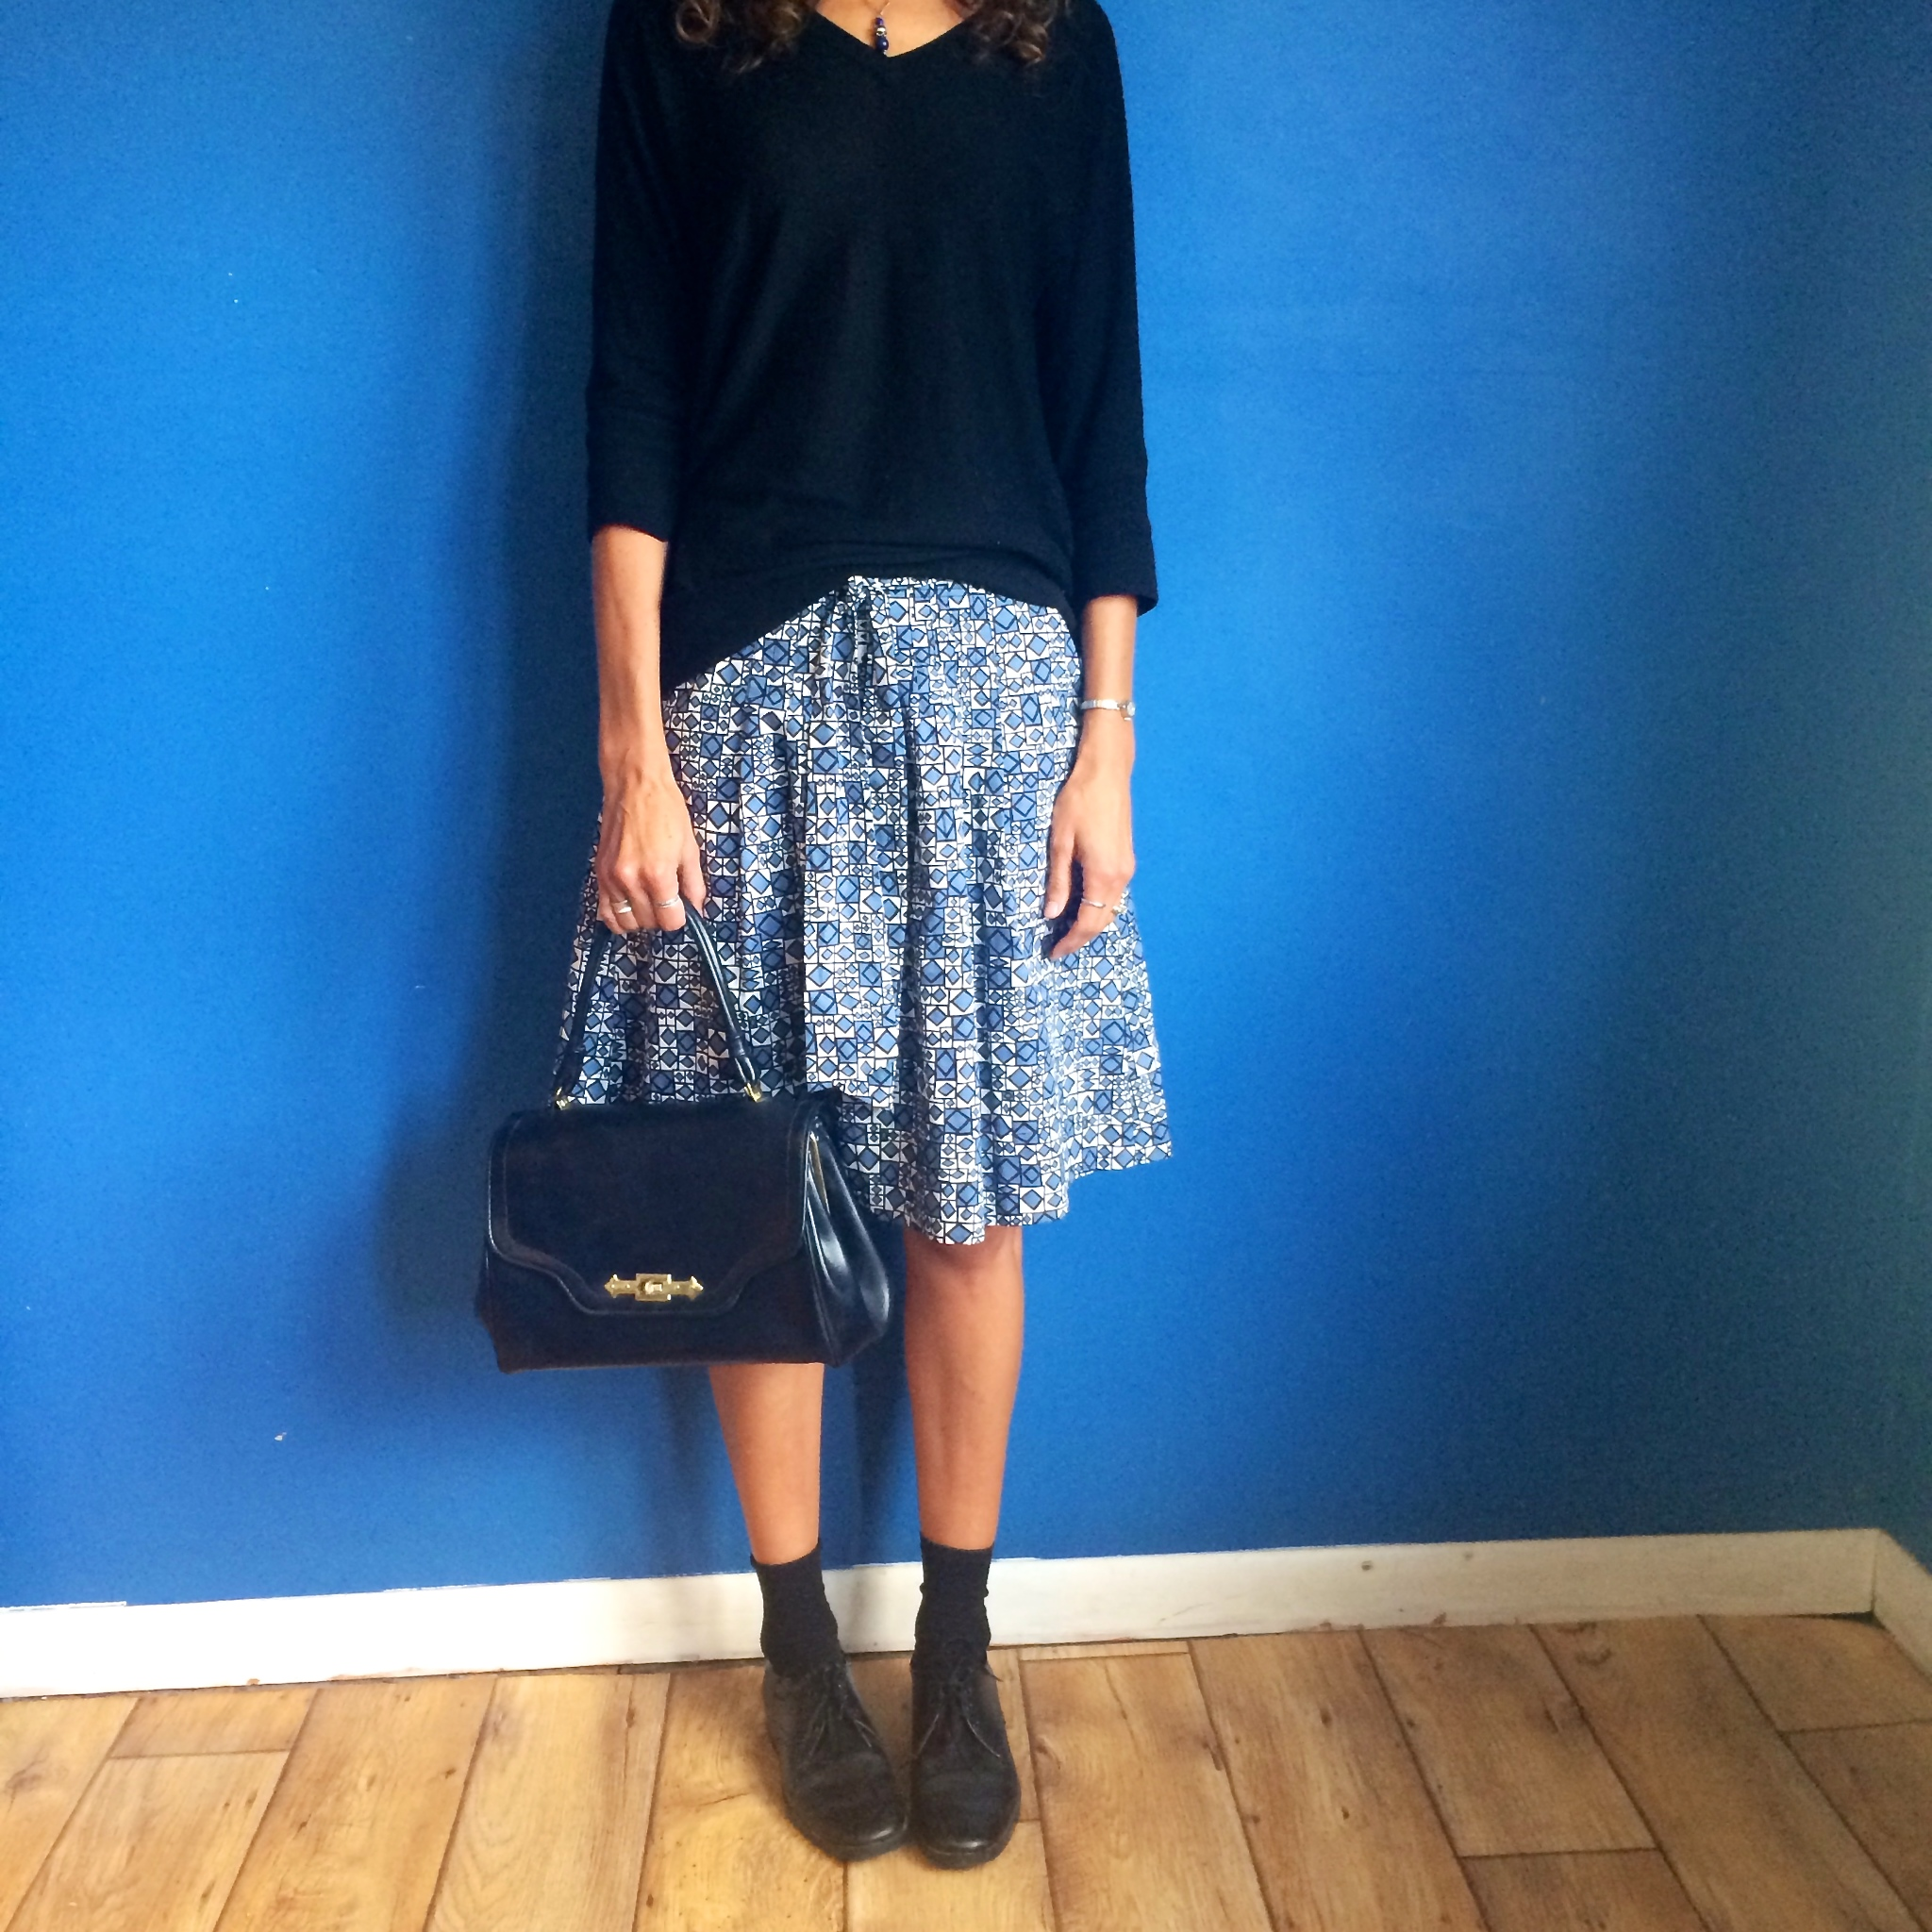 Skirt: thrifted from Goodwill, Sweater: Target (clearance), Shoes: thrifted from Mel Trotter, Purse: belonged to my grandma